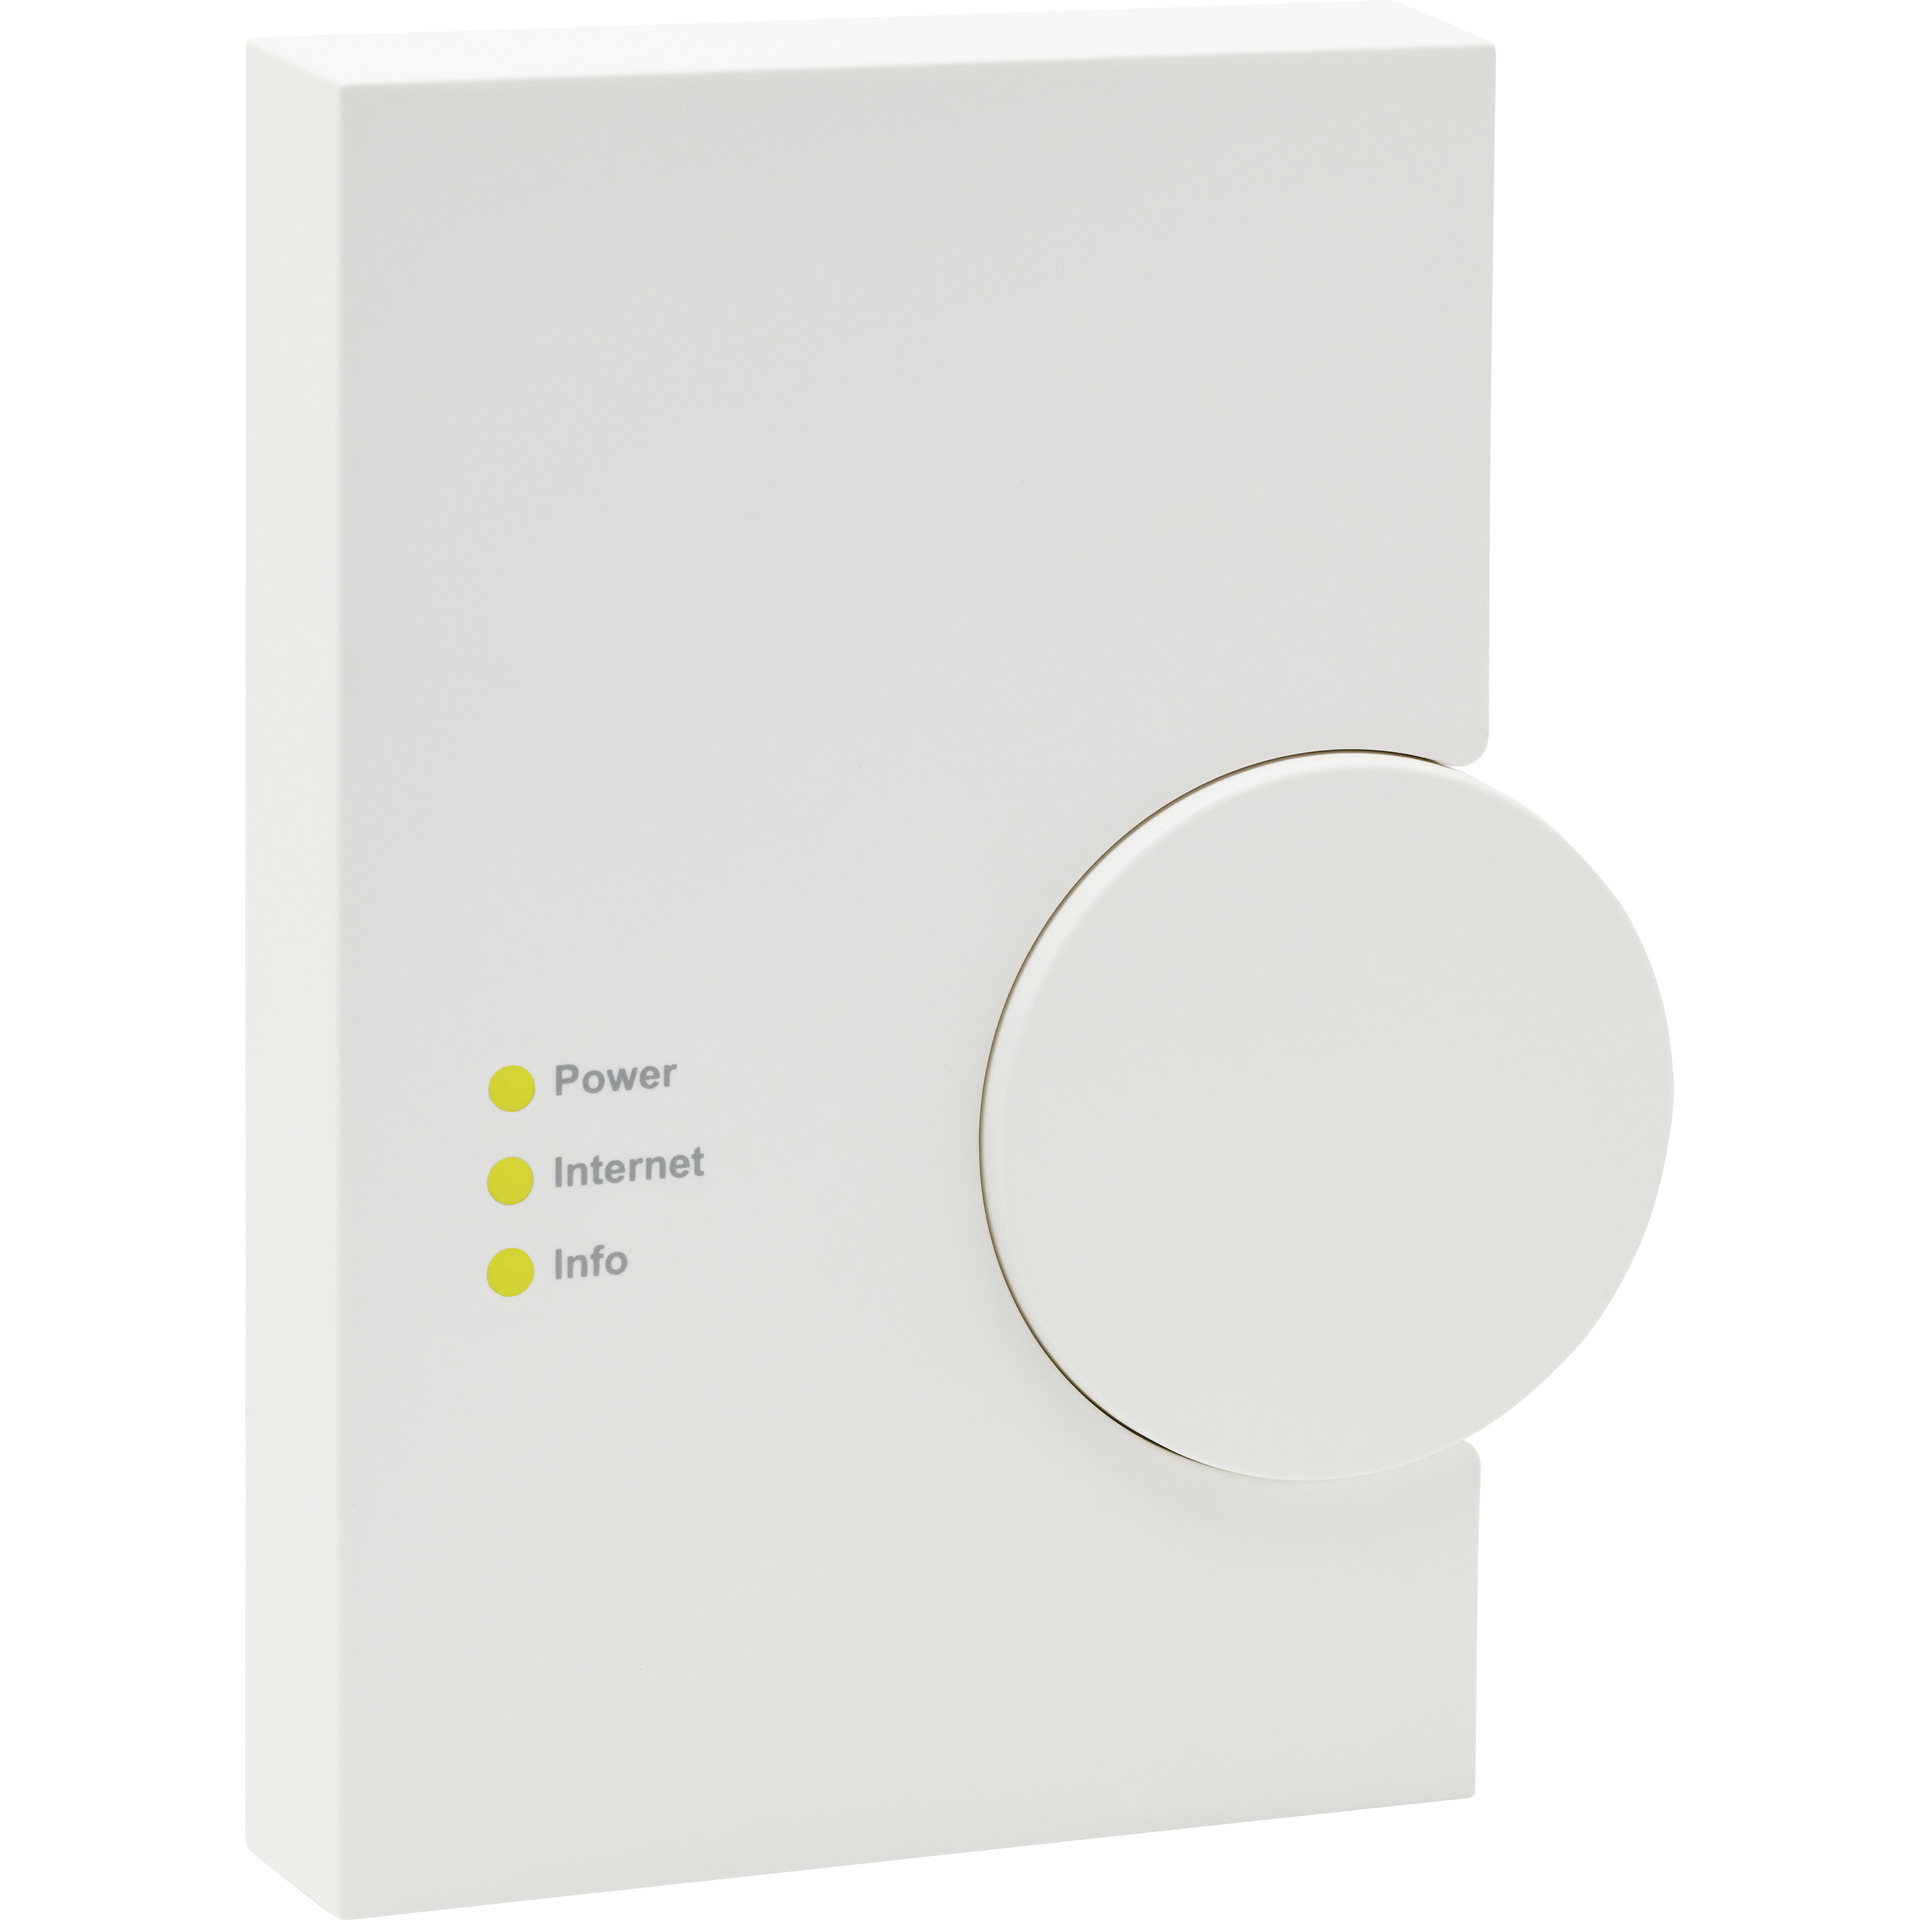 Homematic Zentrale CCU2 für Smart Home - Hausautomation inkl- 12 Monate CloudMatic connect